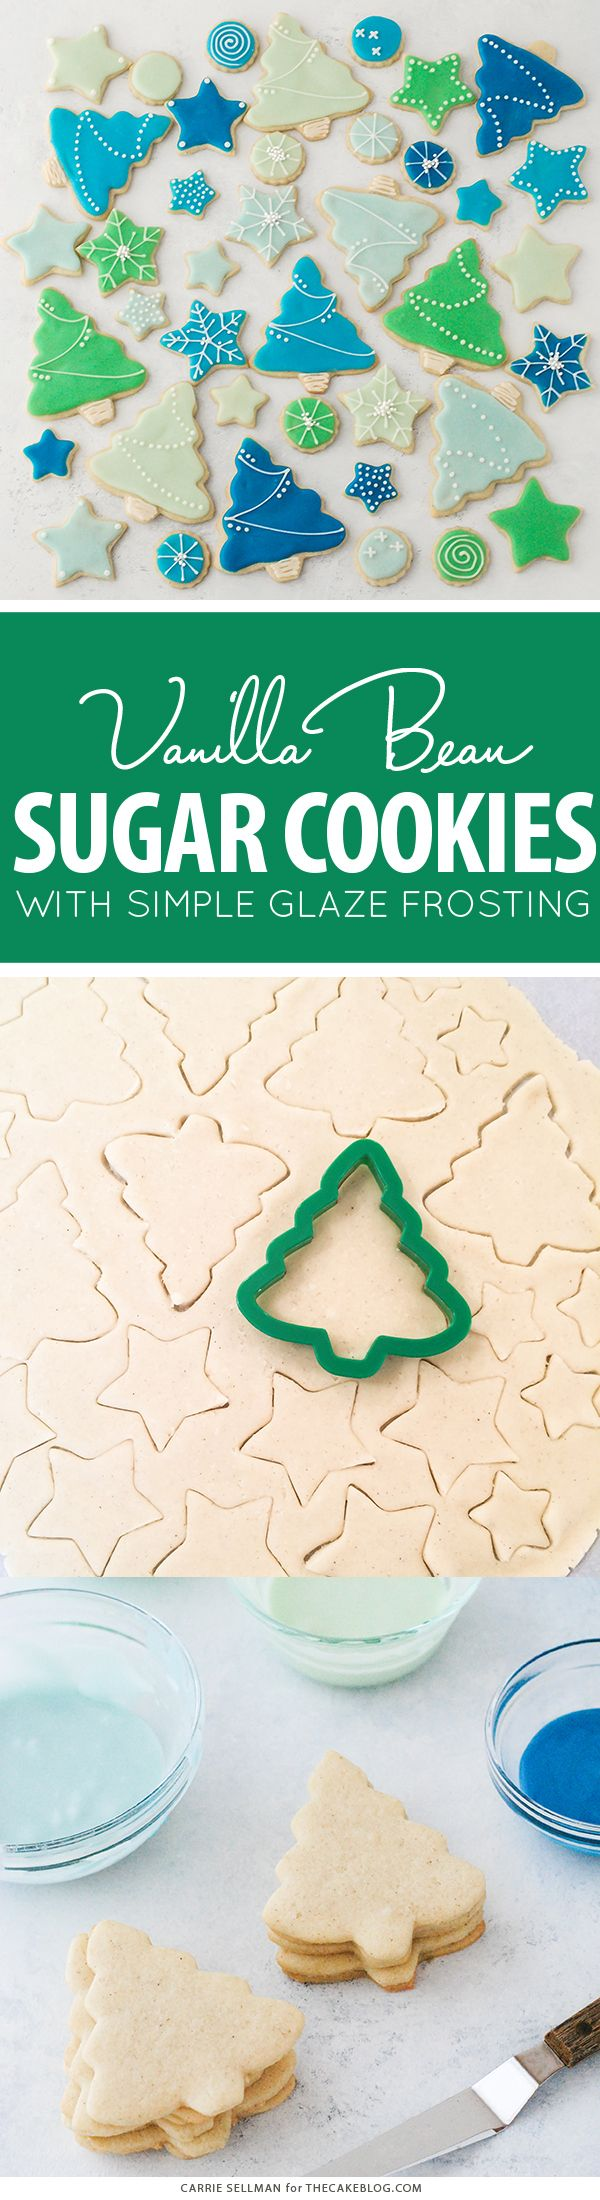 Decorated Sugar Cookies - vanilla bean sugar cookies with a simple glaze icing for easy yet thoughtful gift giving | by Carrie Sellman for The Cake Blog | AD @BobsRedMill #Bakesgiving